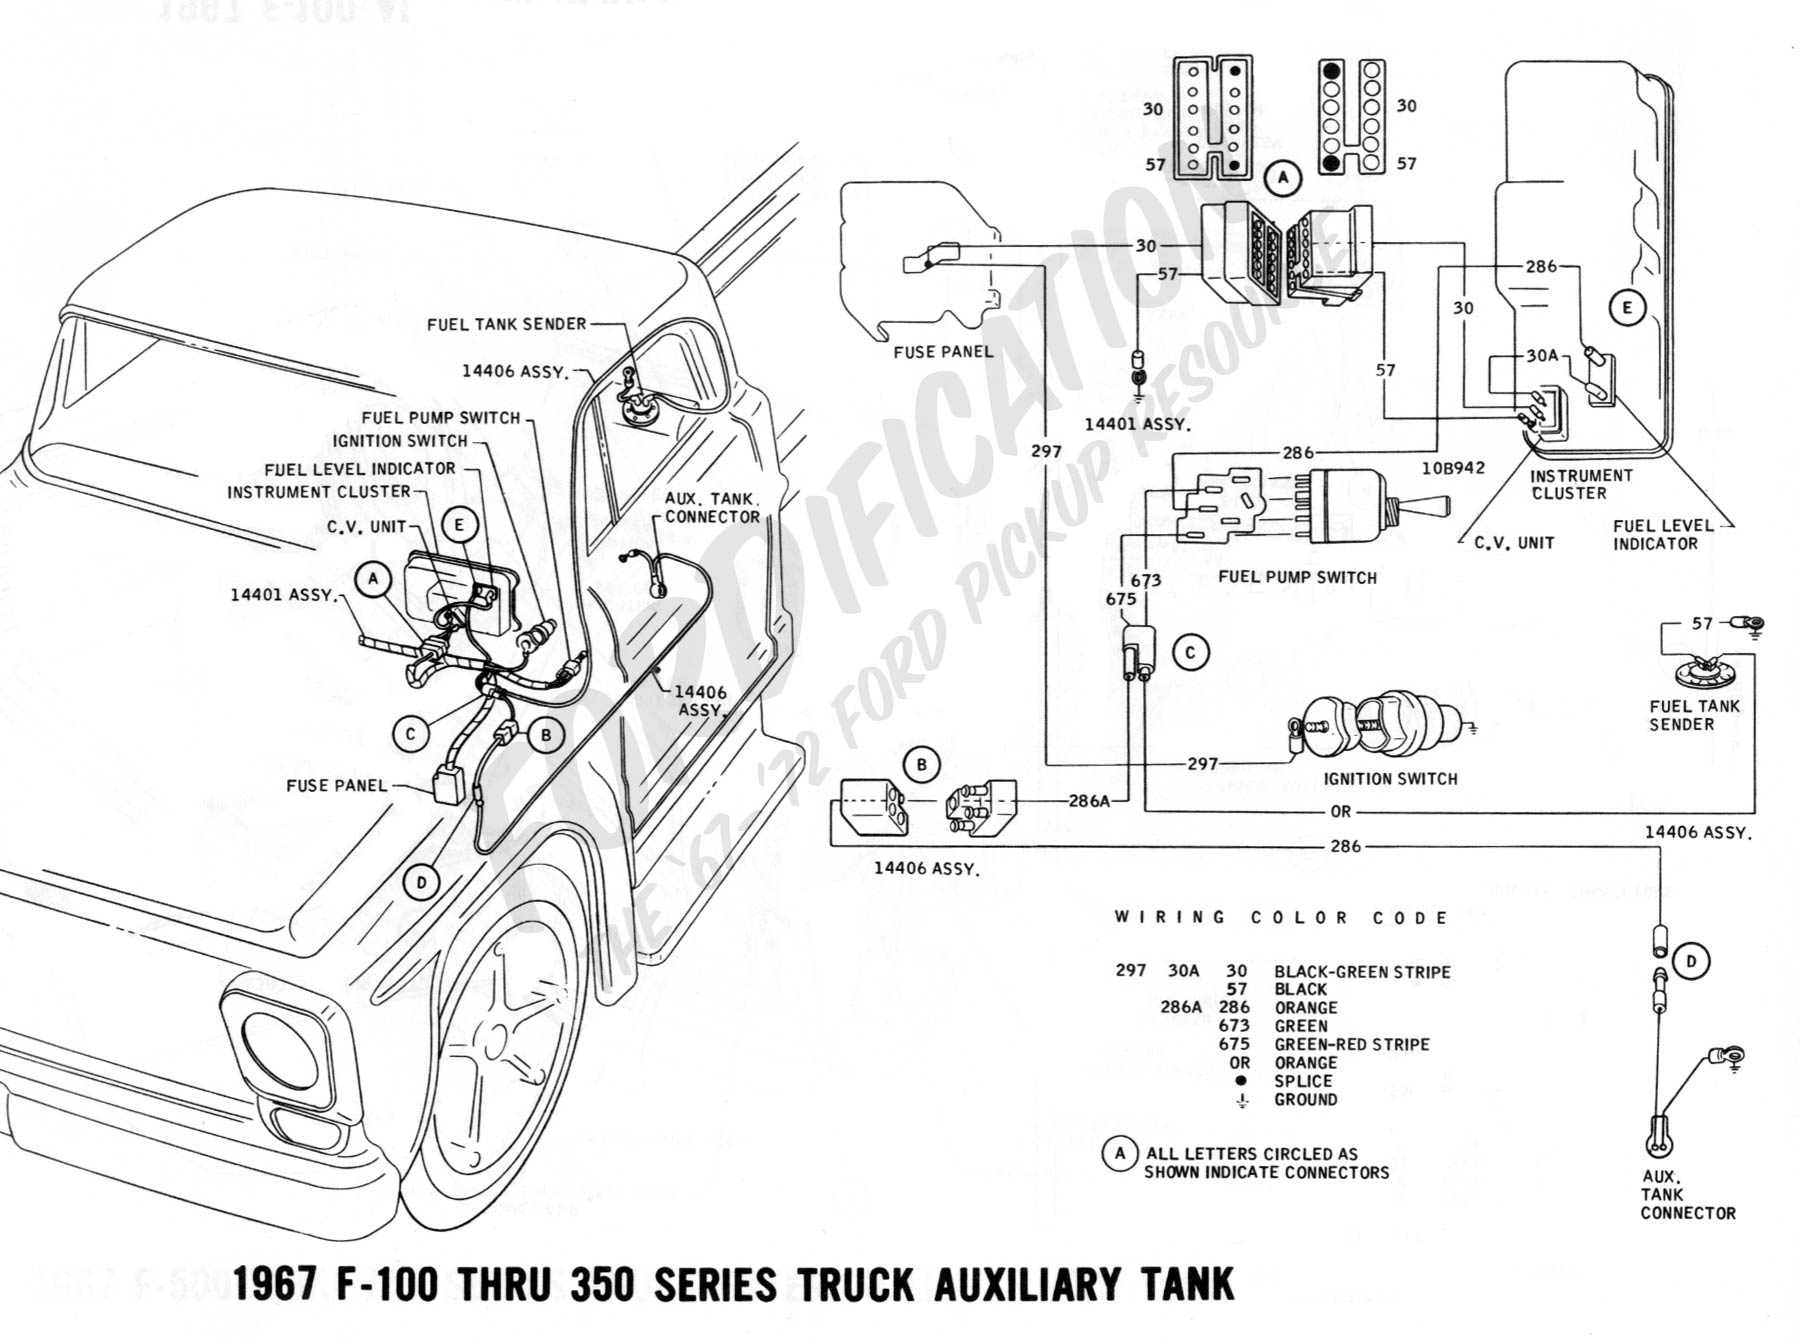 hight resolution of 86 f150 wiper wiring diagram images gallery